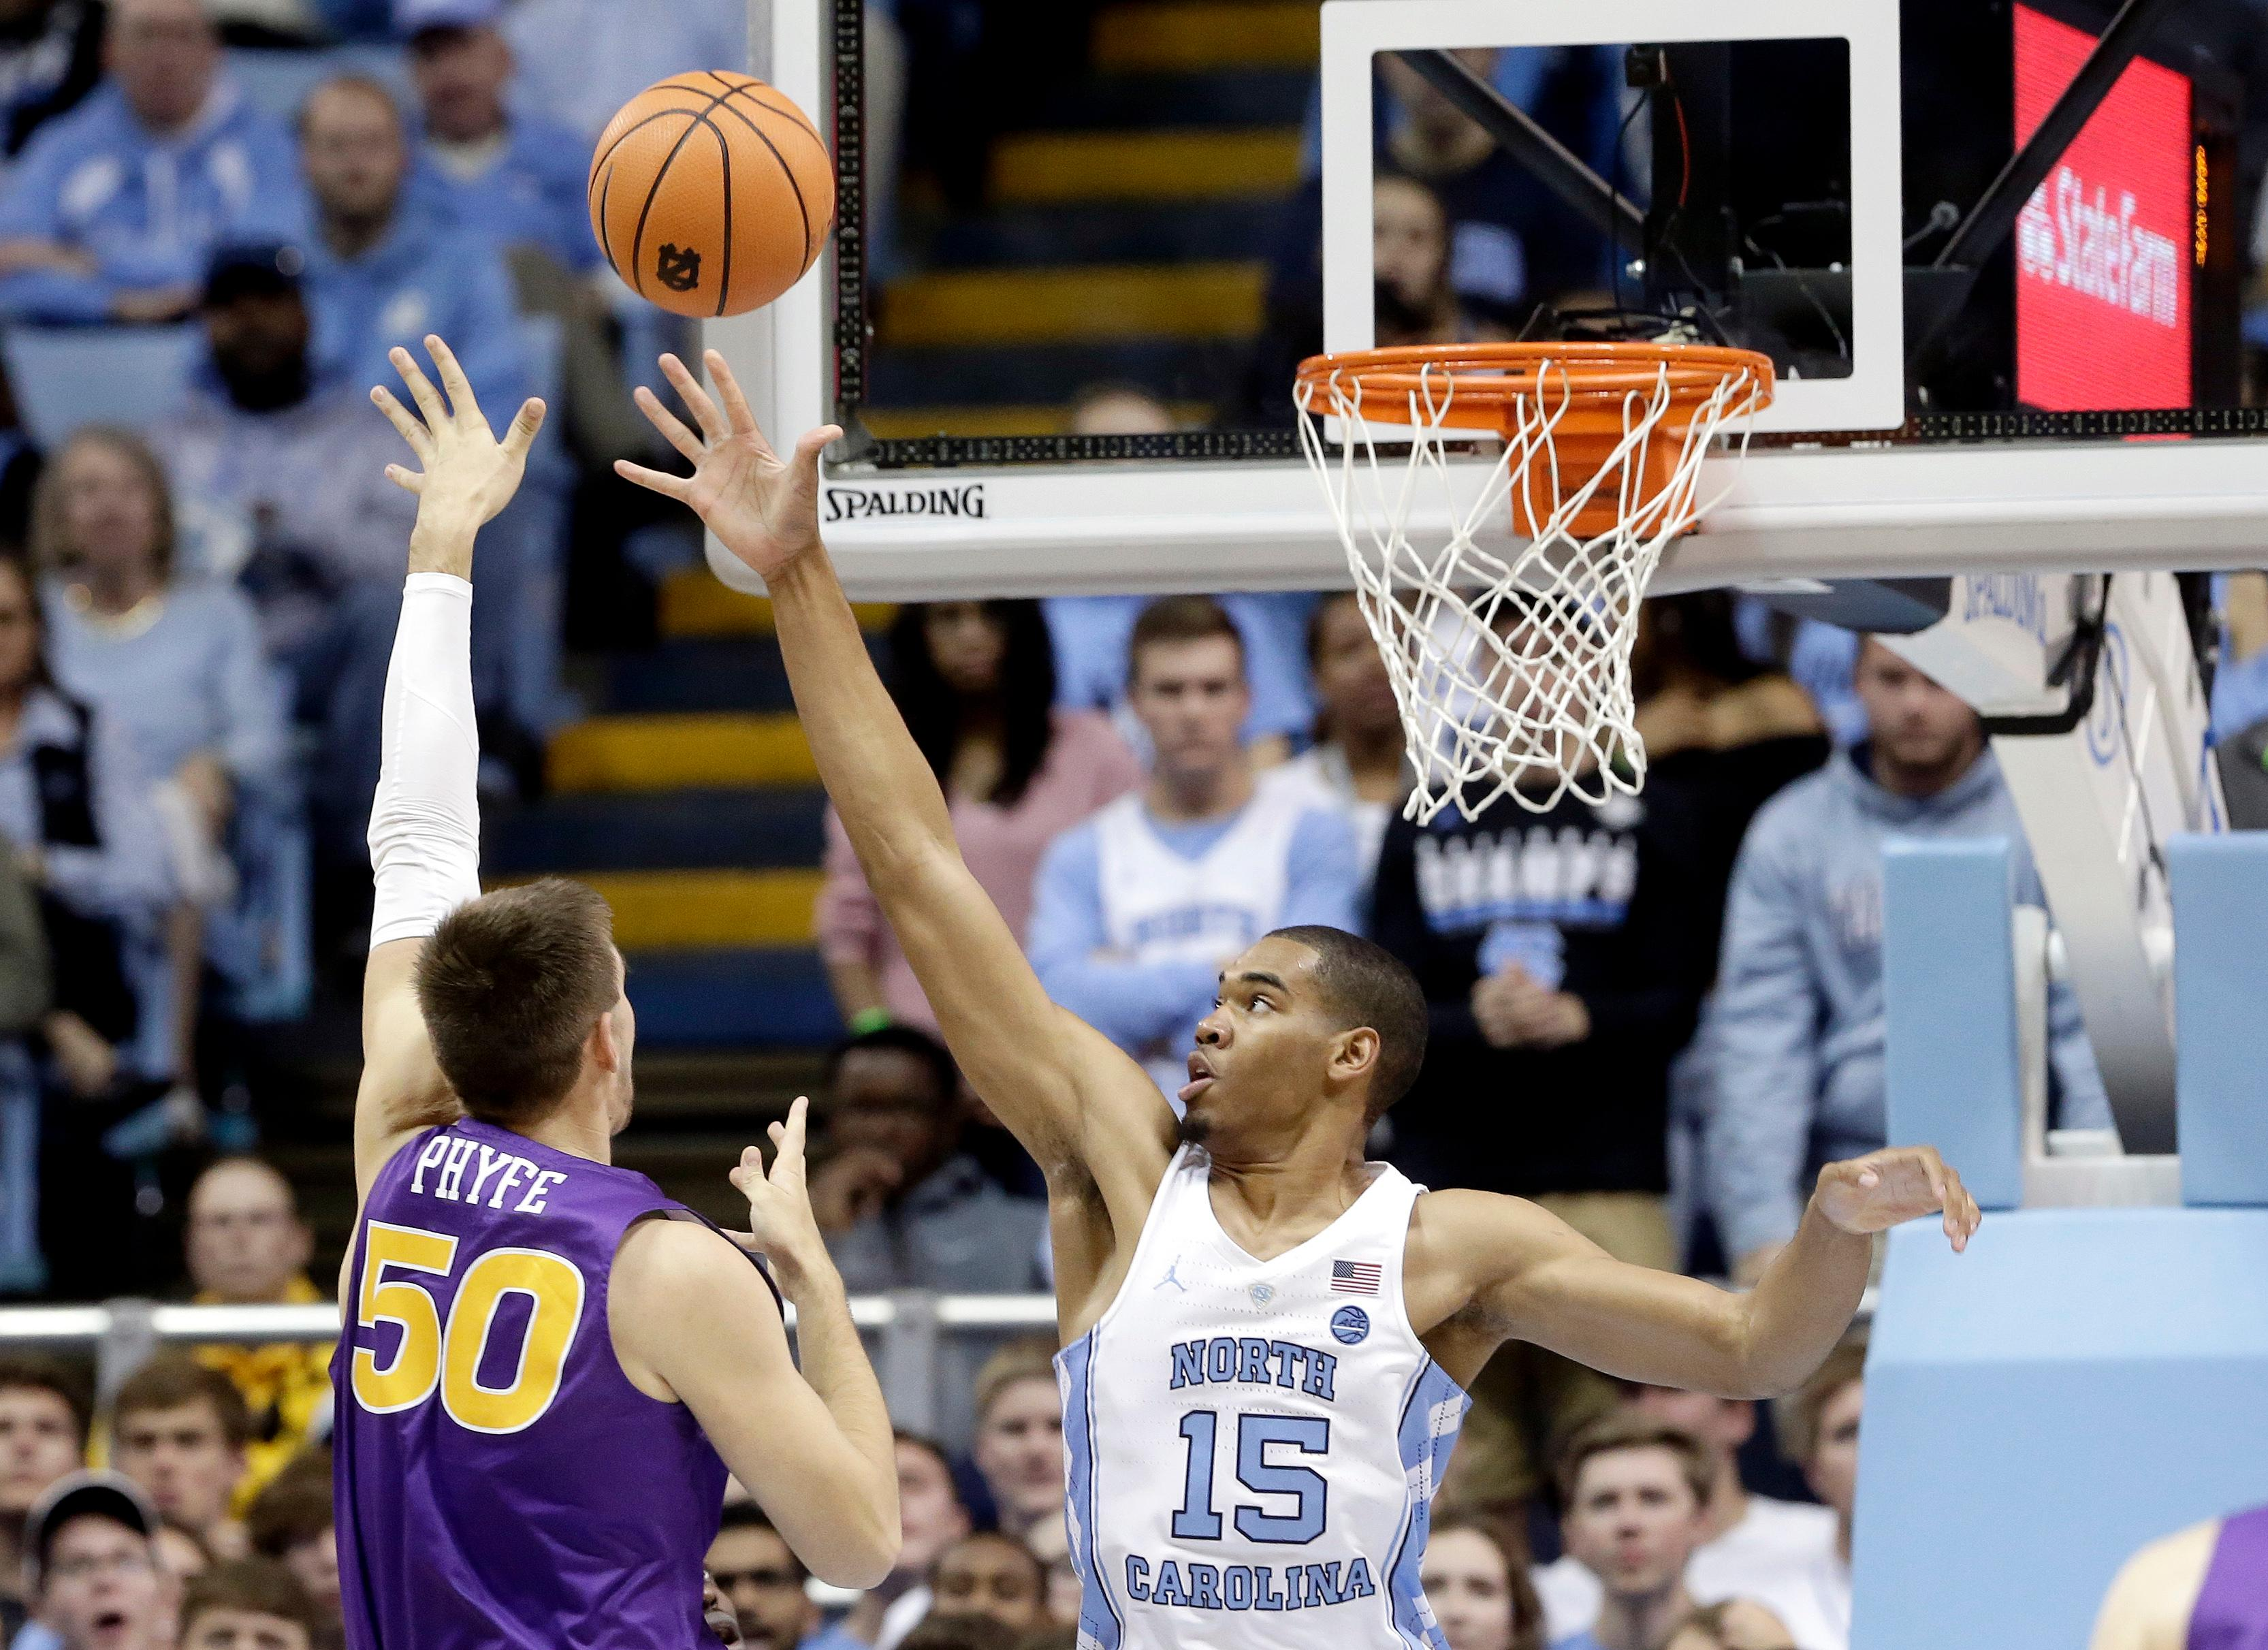 North Carolina's Garrison Brooks (15) defends while Northern Iowa's Austin Phyfe (50) shoots during the first half of an NCAA college basketball game in Chapel Hill, N.C., Friday, Nov. 10, 2017. (AP Photo/Gerry Broome)